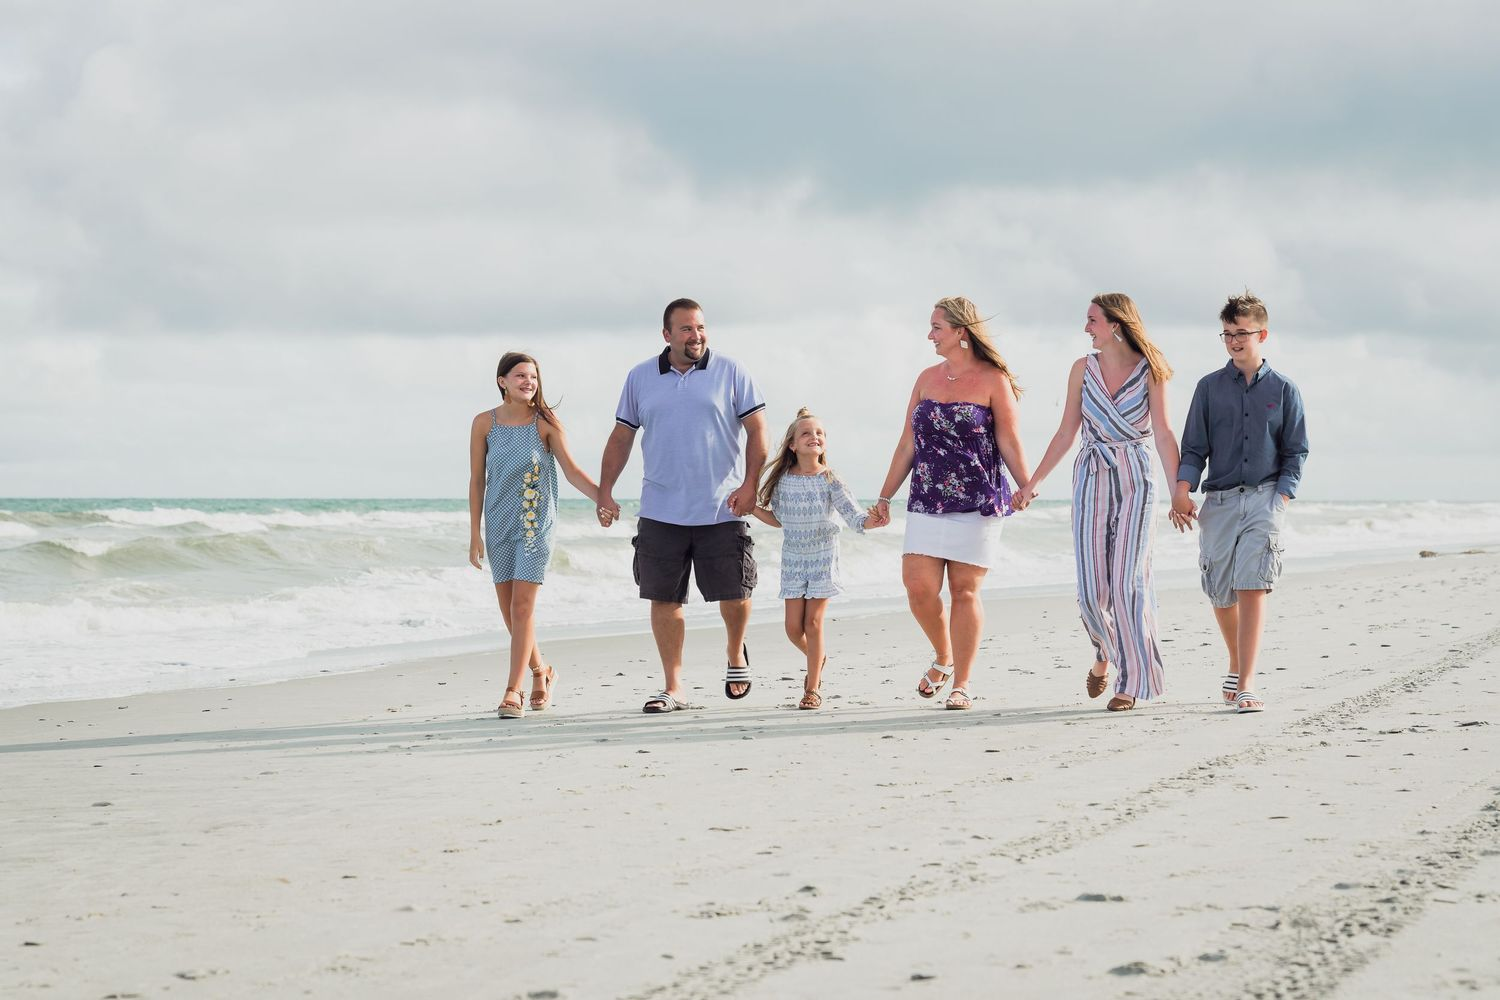 Family portrait at the beach in Myrtle Beach by PHV Photo, Myrtle Beach Family Portrait Photographer